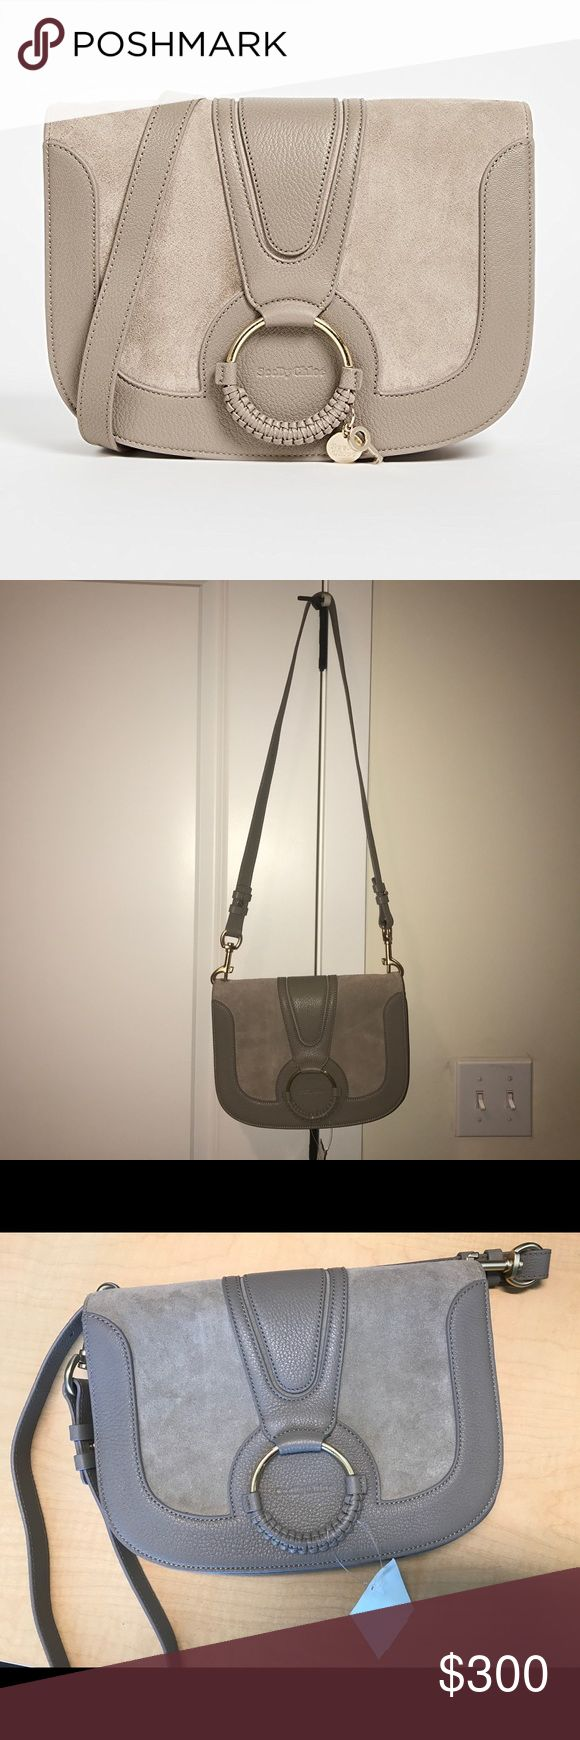 """NEW See by Chloe Hana Medium Shoulder Bag Still sold full price in stores. This item was purchased from Nordstrom rack with worn & refinished tag but I've never worn it. as you can see, the color looks different depending on lighting. The only difference between mine and the stock photo is that small key charm from loop is missing. Color is called motty grey. Hardware is gold.  Detachable shoulder strap Magnetic flap closure; lined Interior slip compartment, interior slip pocket 10.25""""W x…"""